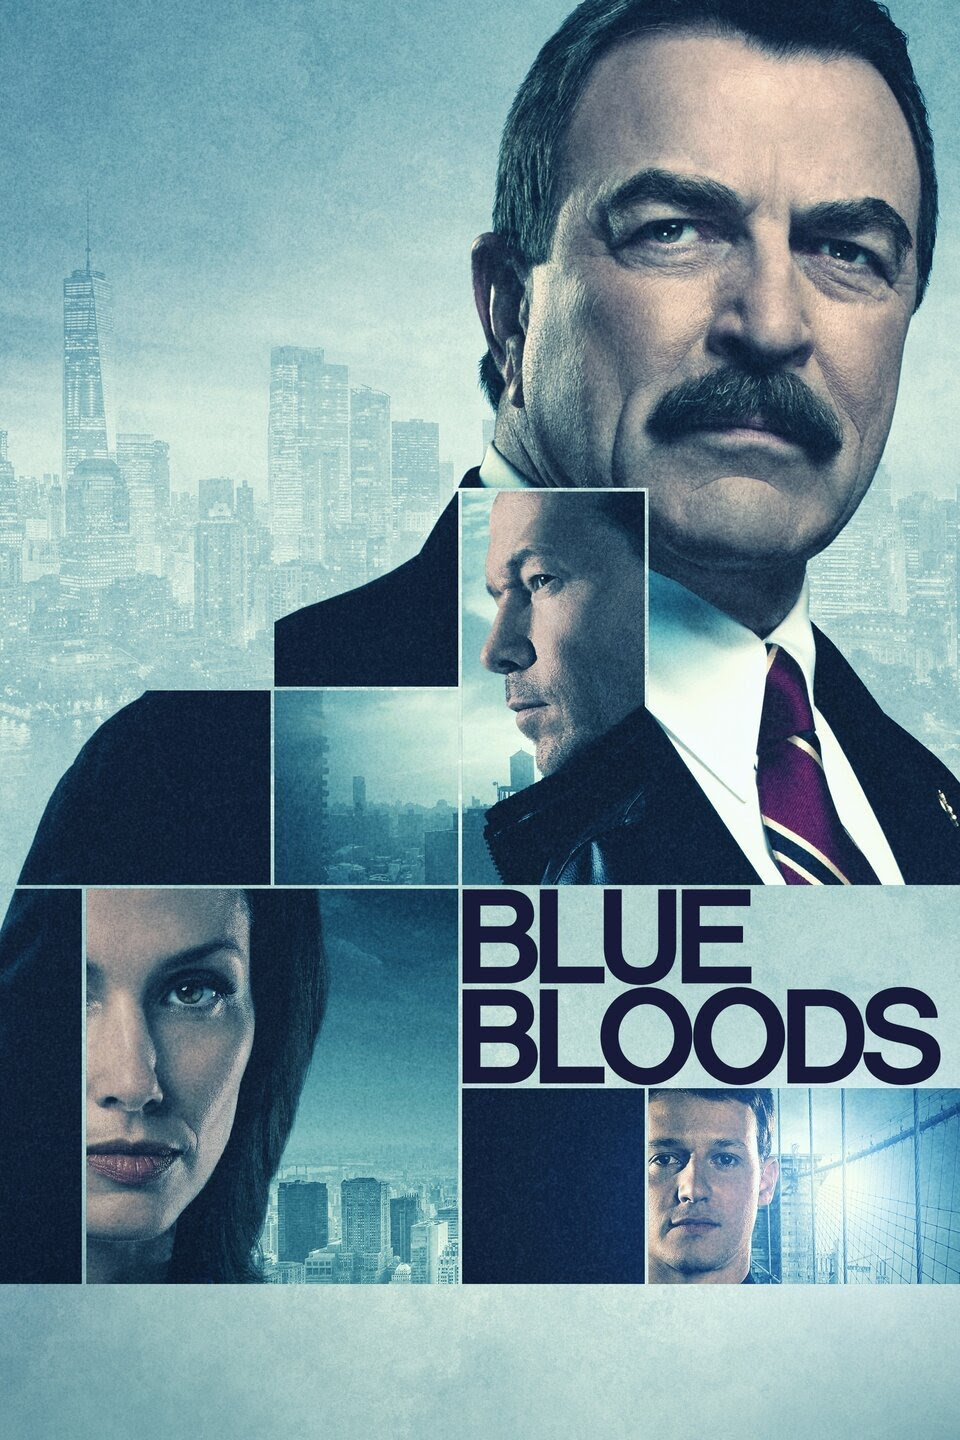 Blue Bloods - Season 11 Episode 1 - Triumph Over Trauma